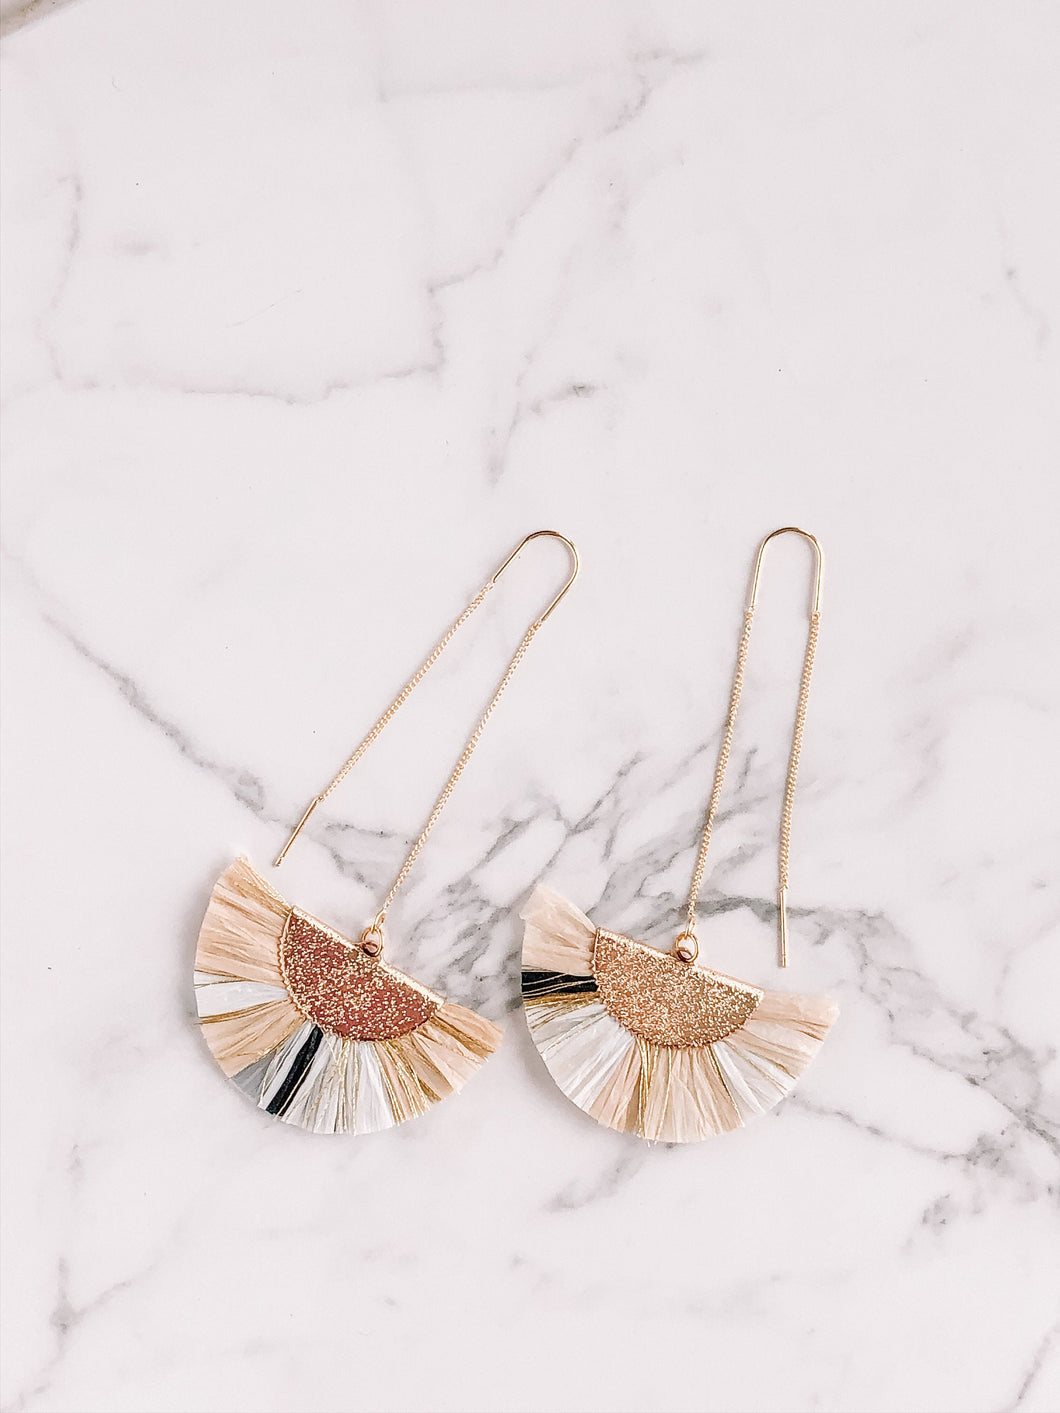 Raffia fan threader earrings //